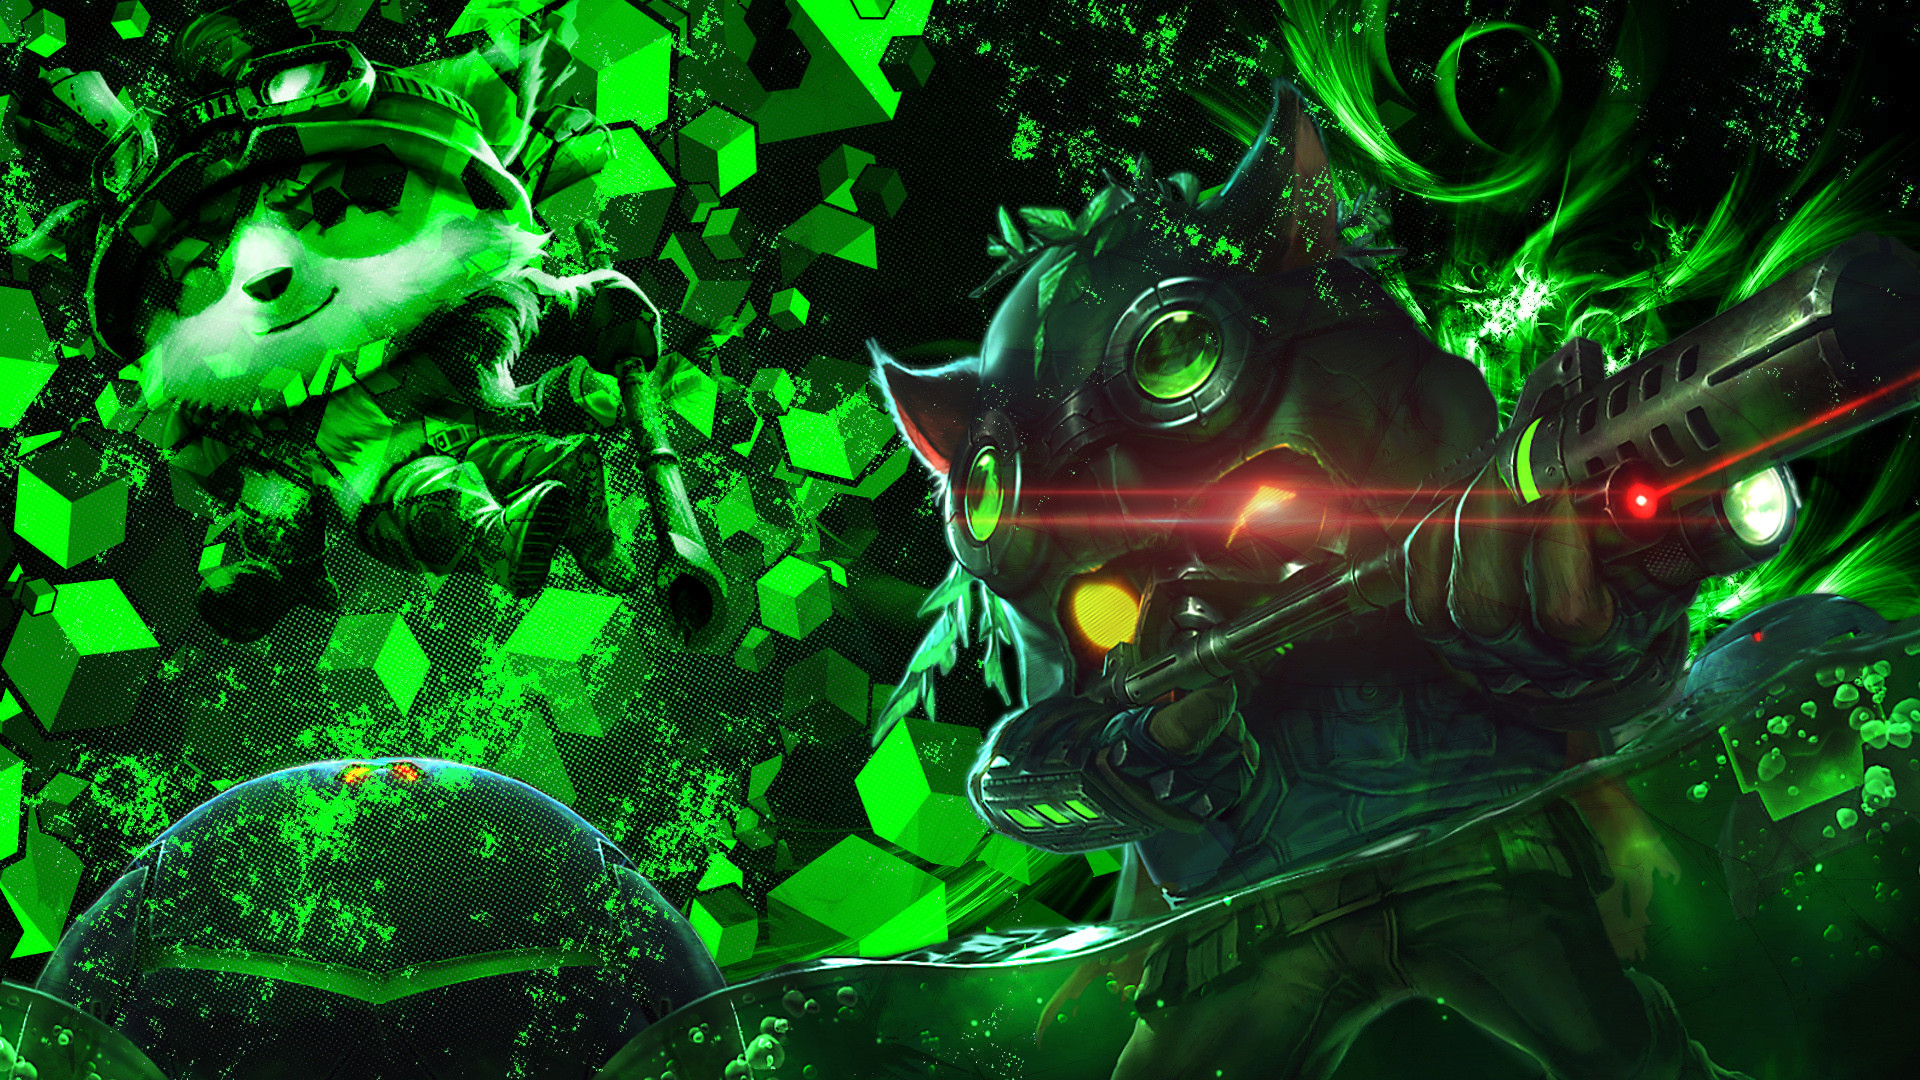 League Of Legends Animated Wallpaper Windows 10 Teemo Wallpapers 77 Images